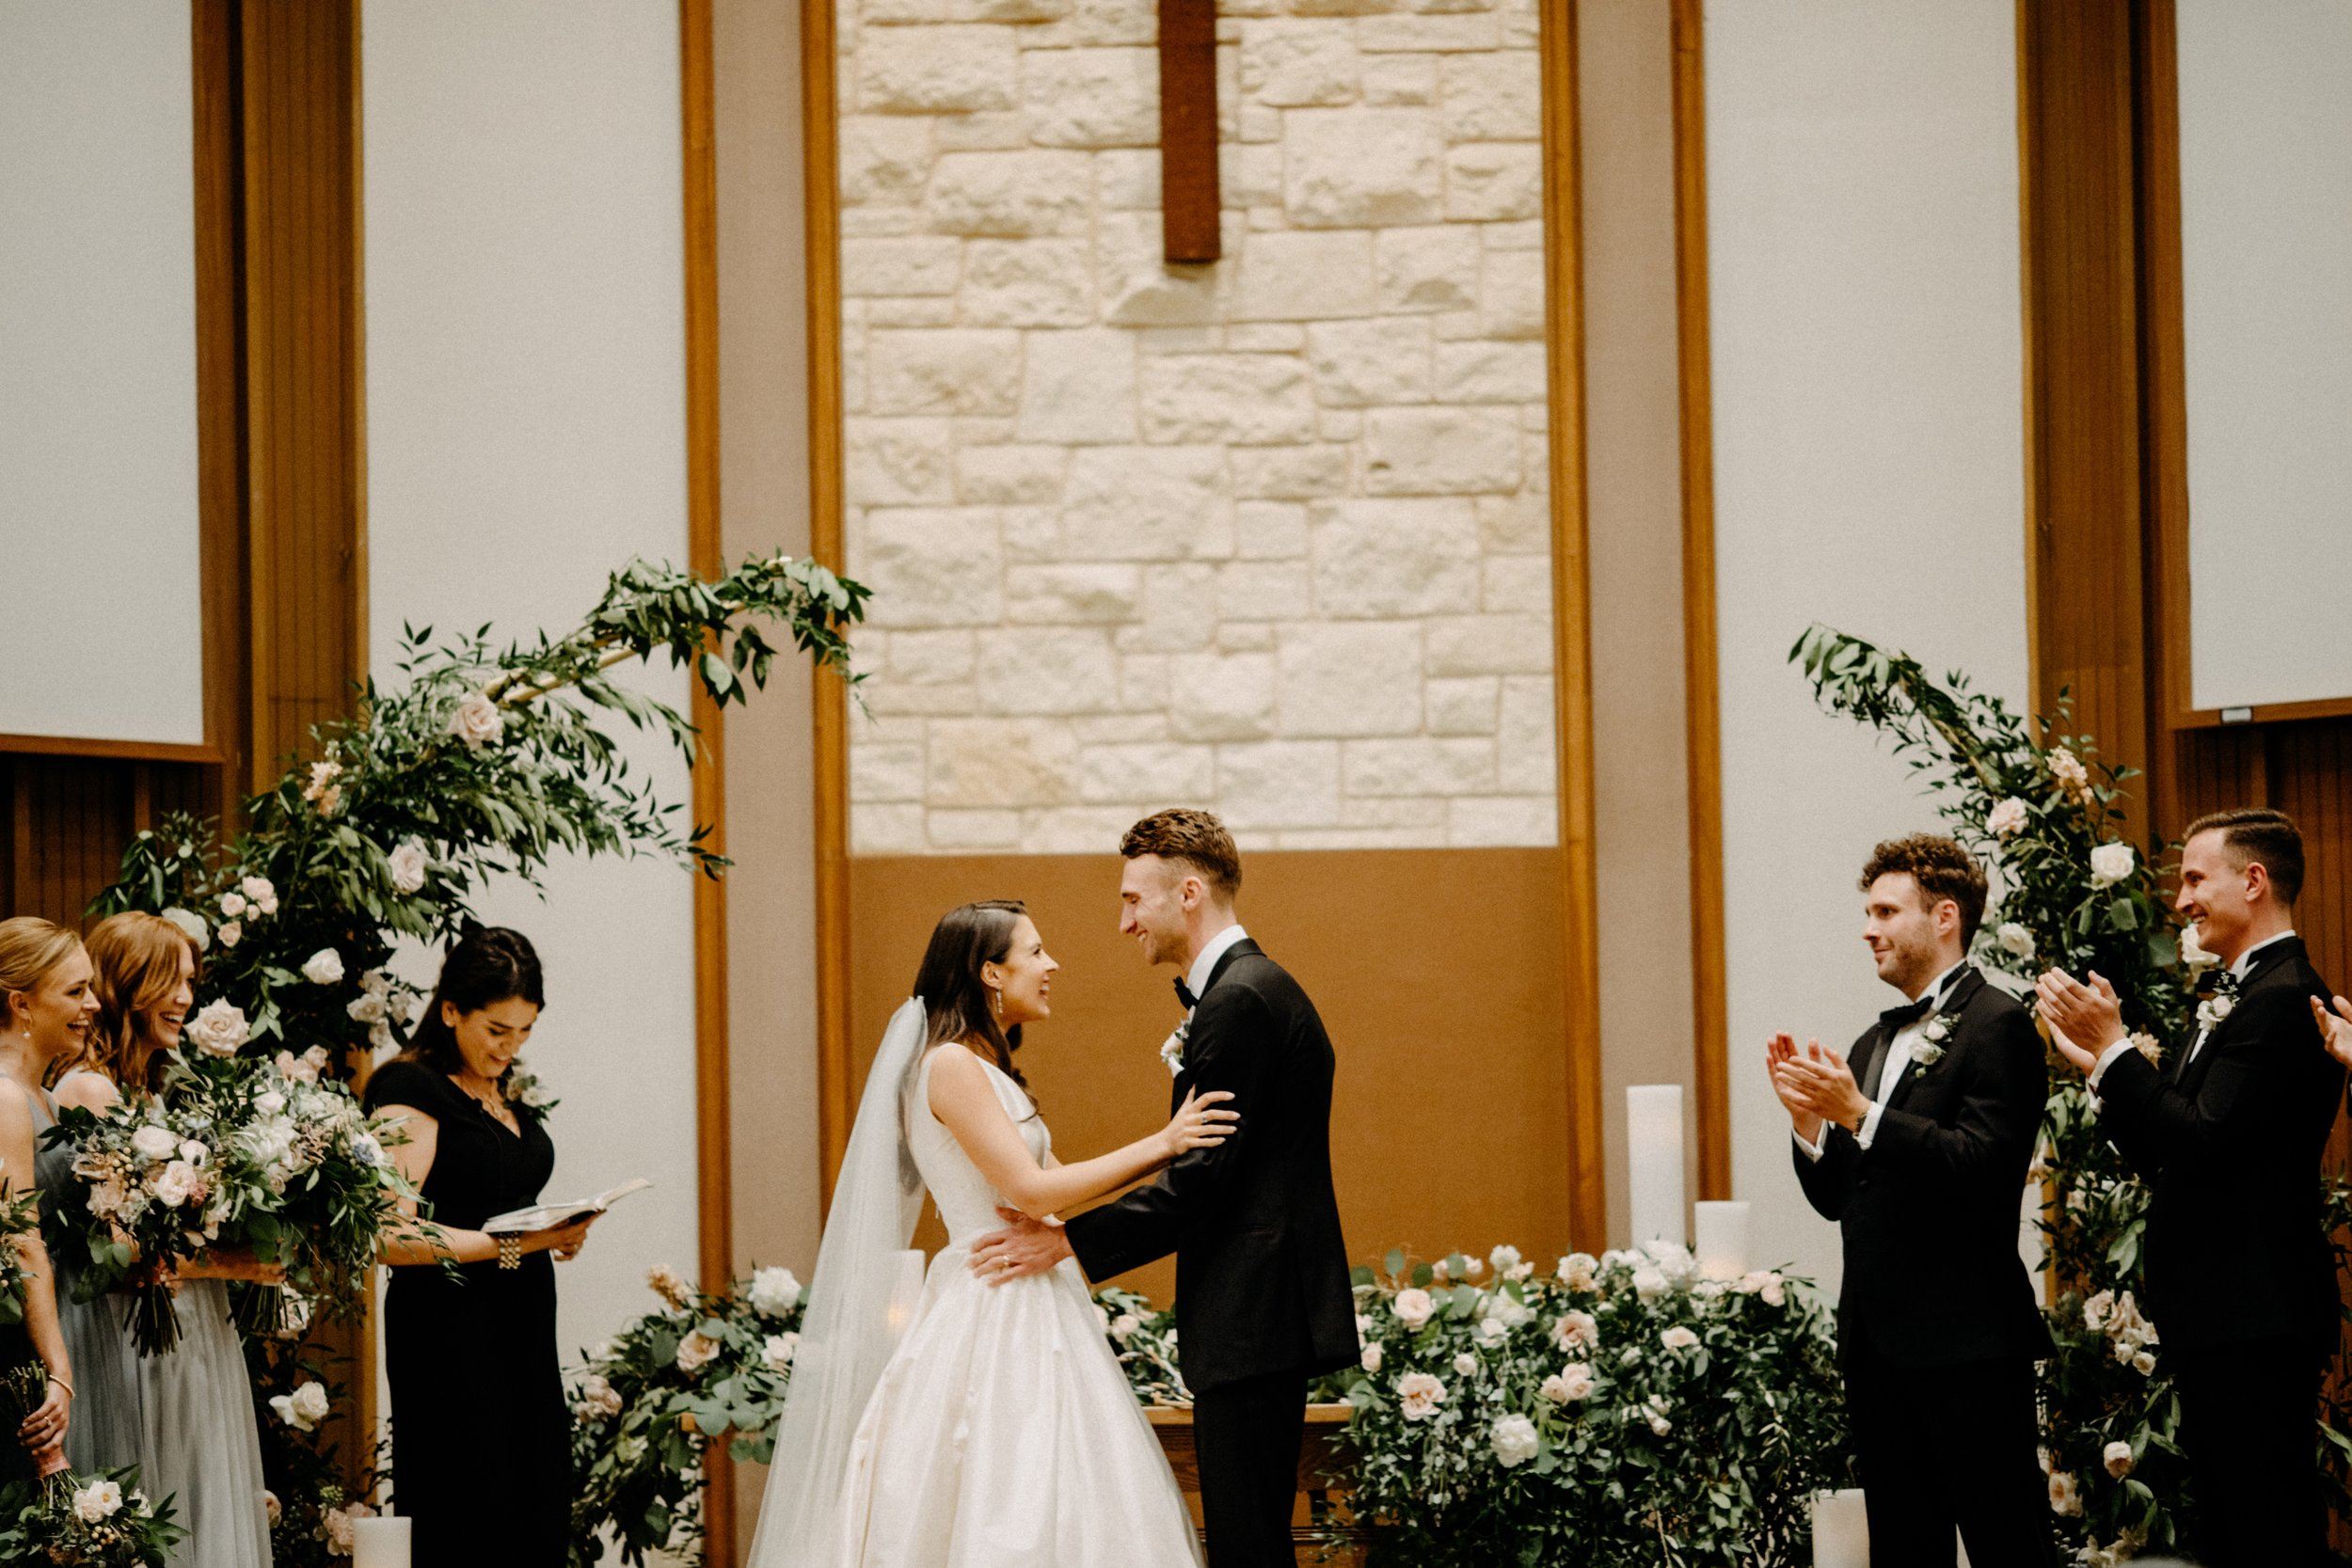 st-anthony-hotel-wedding-photography-10083san-antonio.JPG